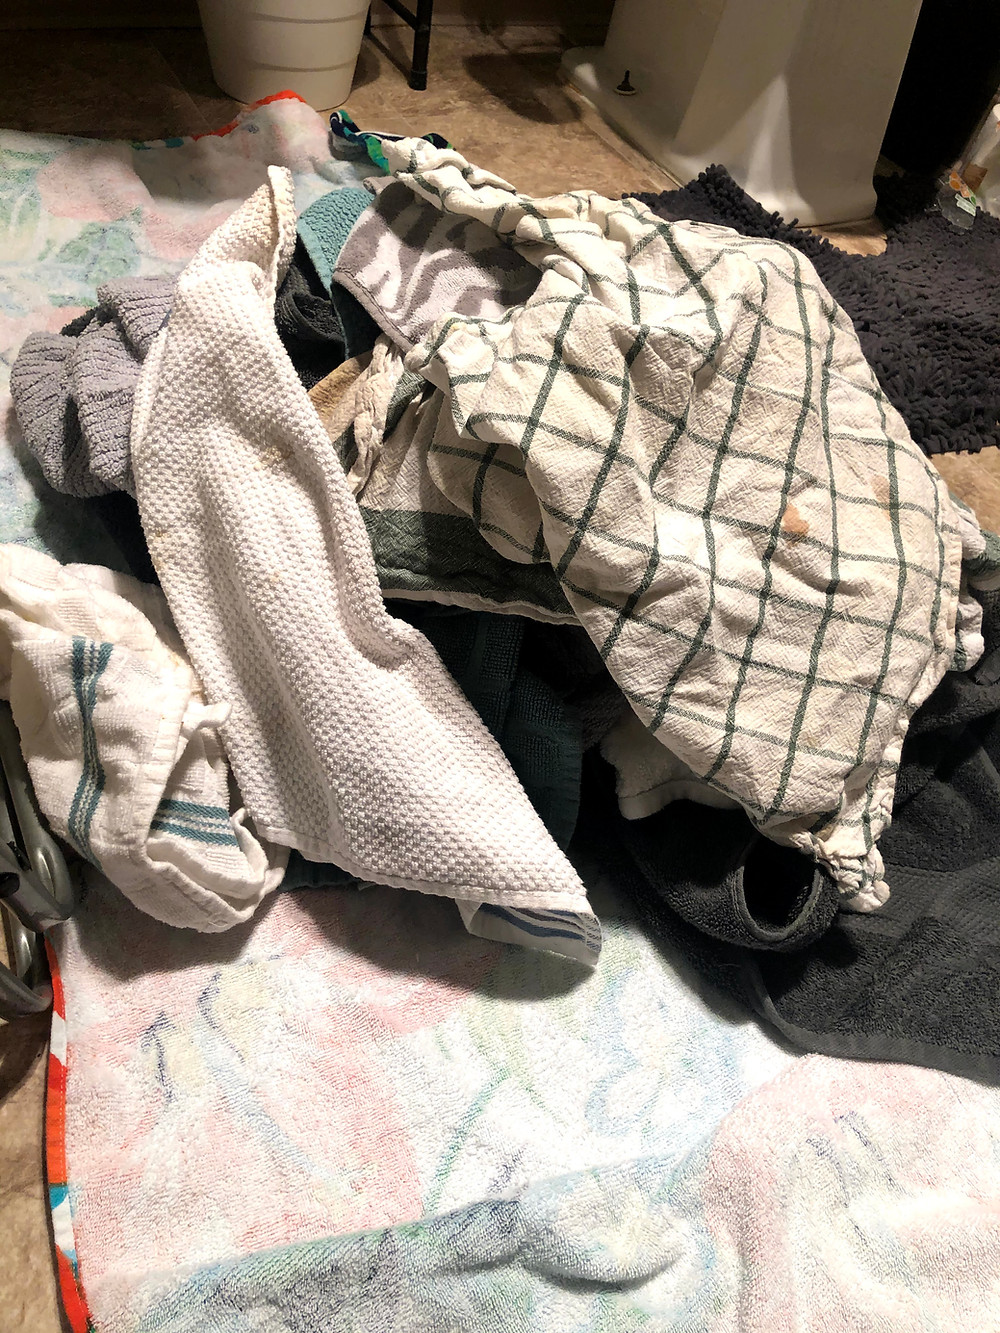 This large pile of reusable towels is ready for a wash!